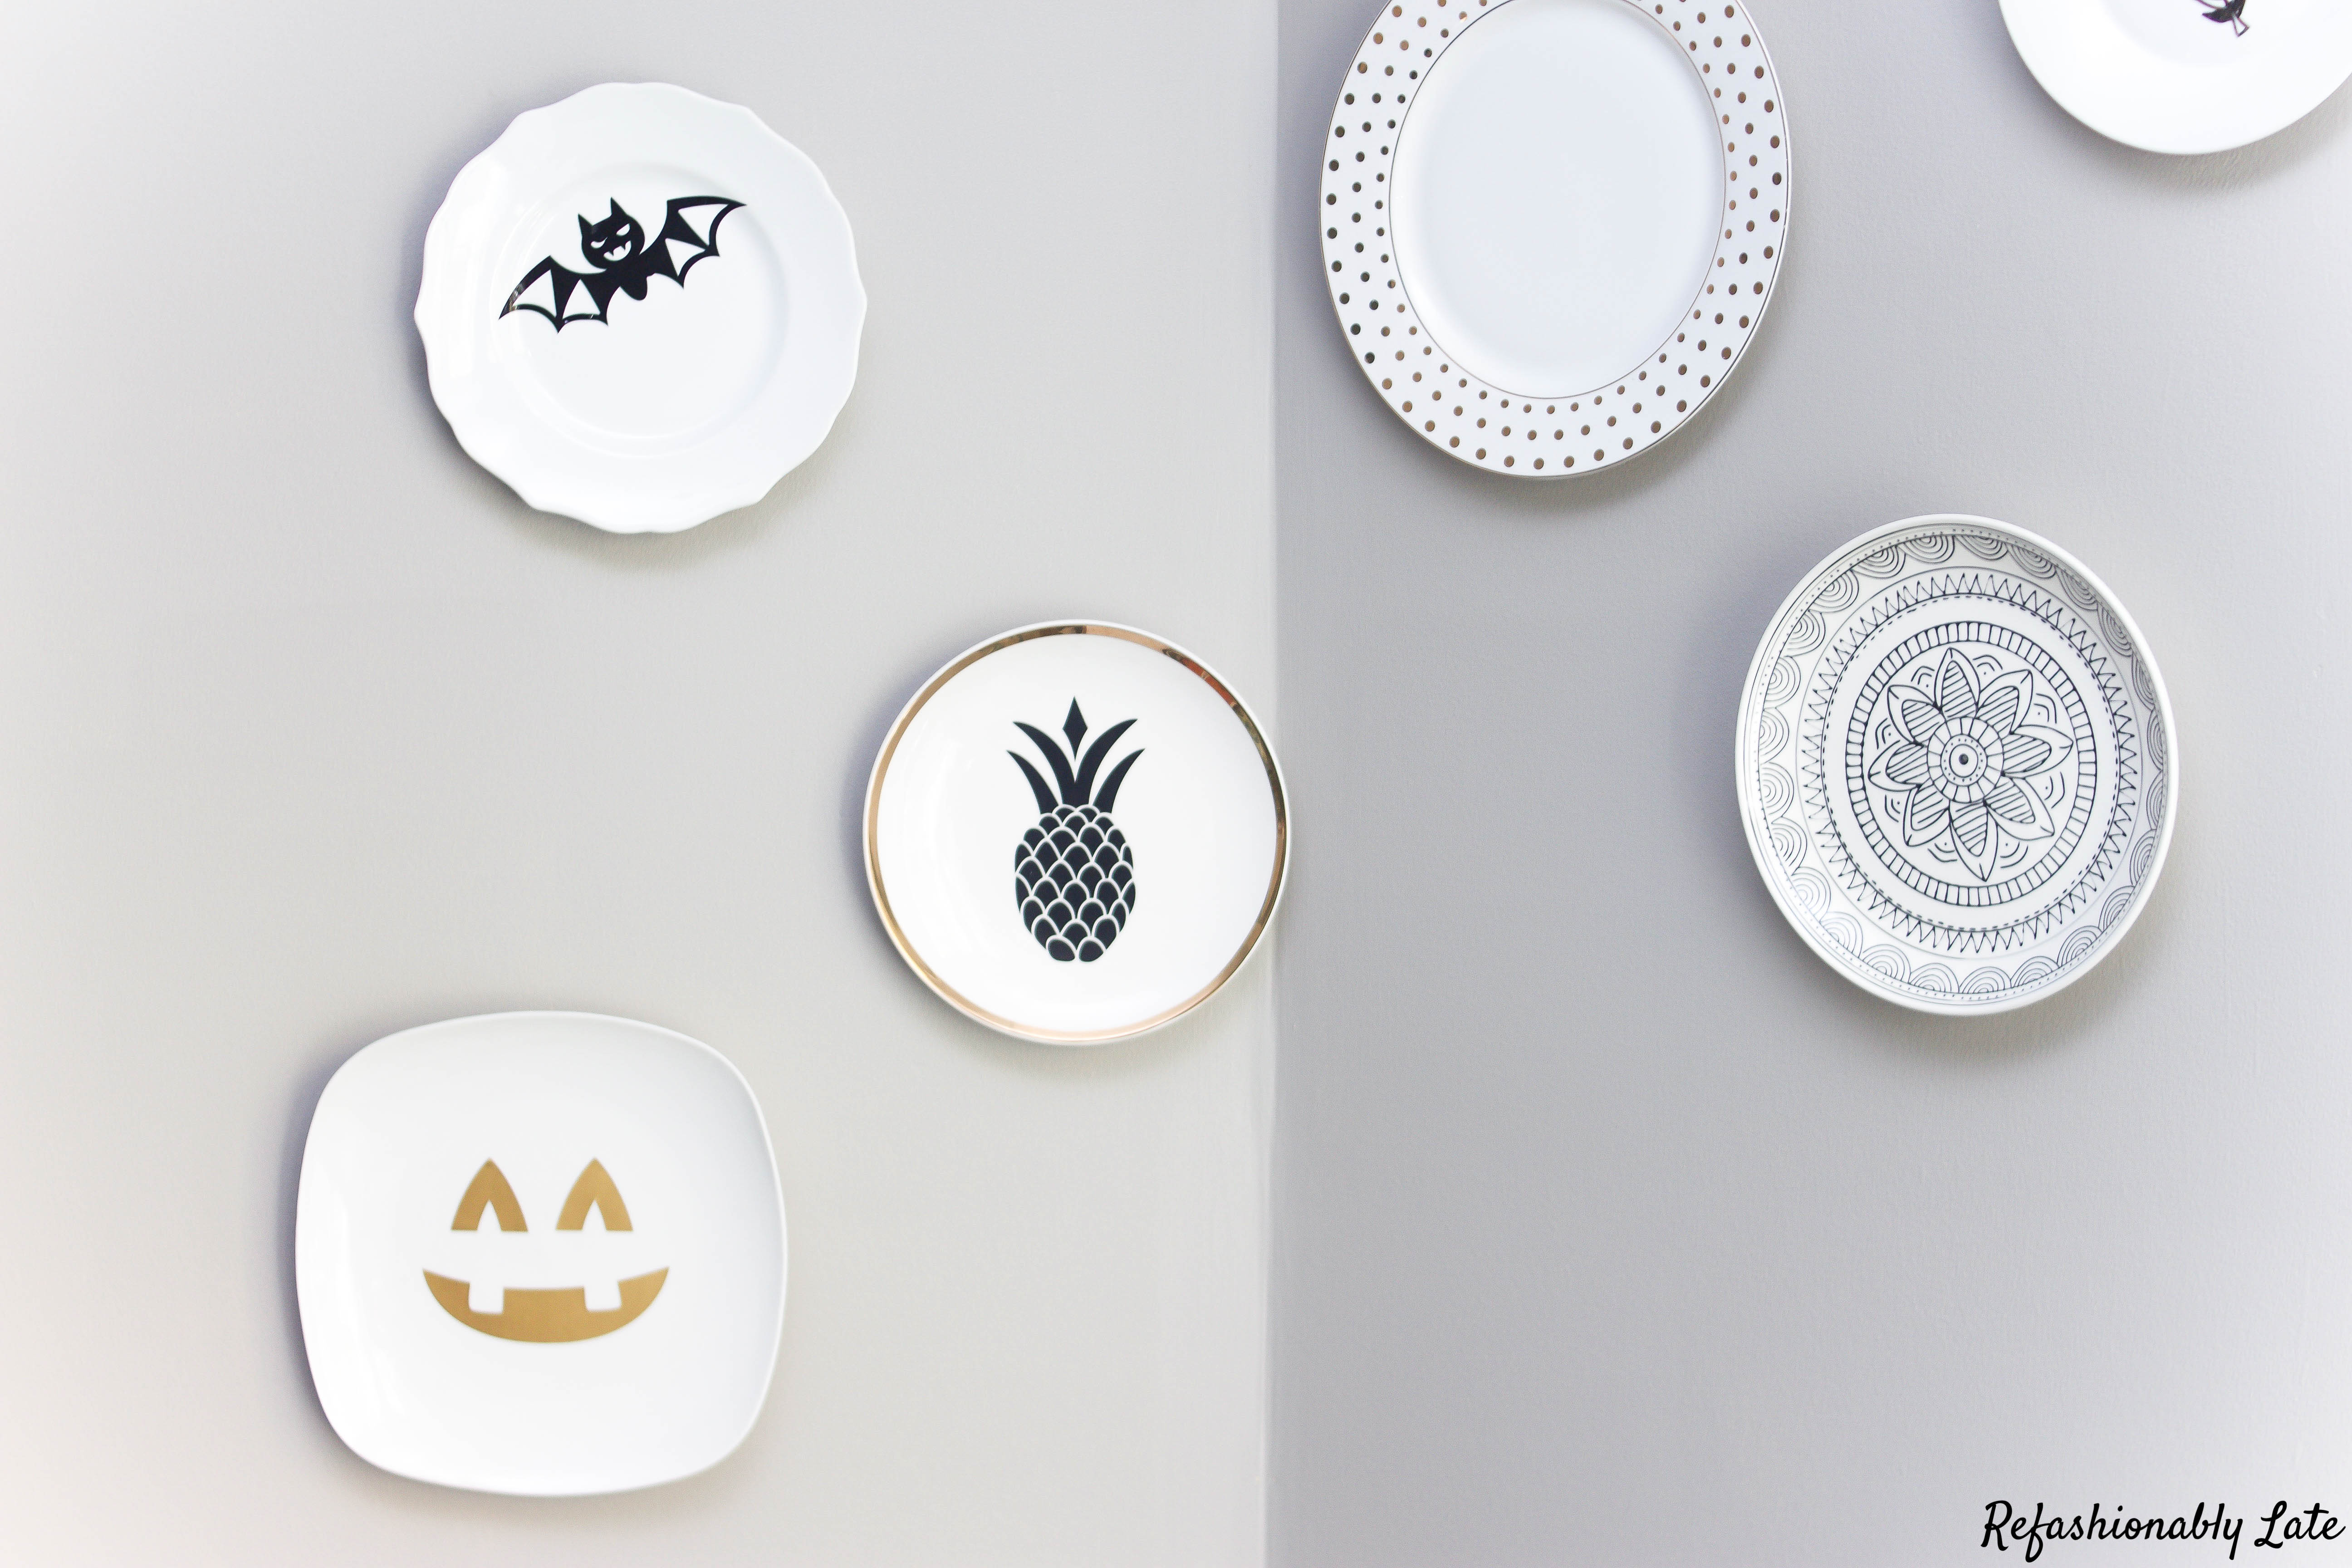 plates hung on a gray wall with Halloween window cling decals in the center of the plates